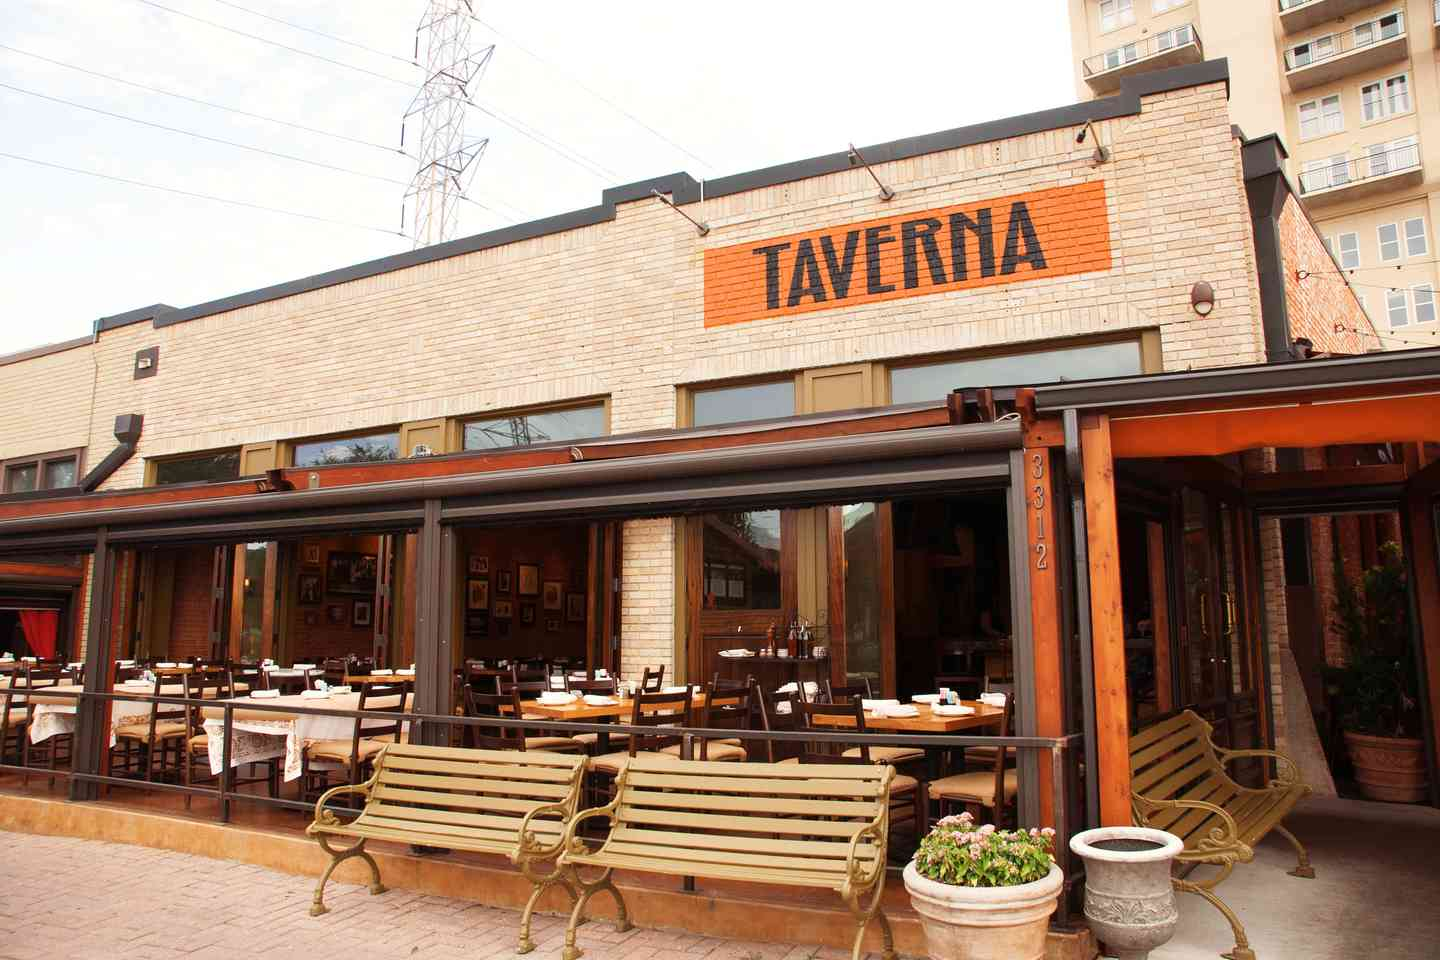 Taverna Dallas